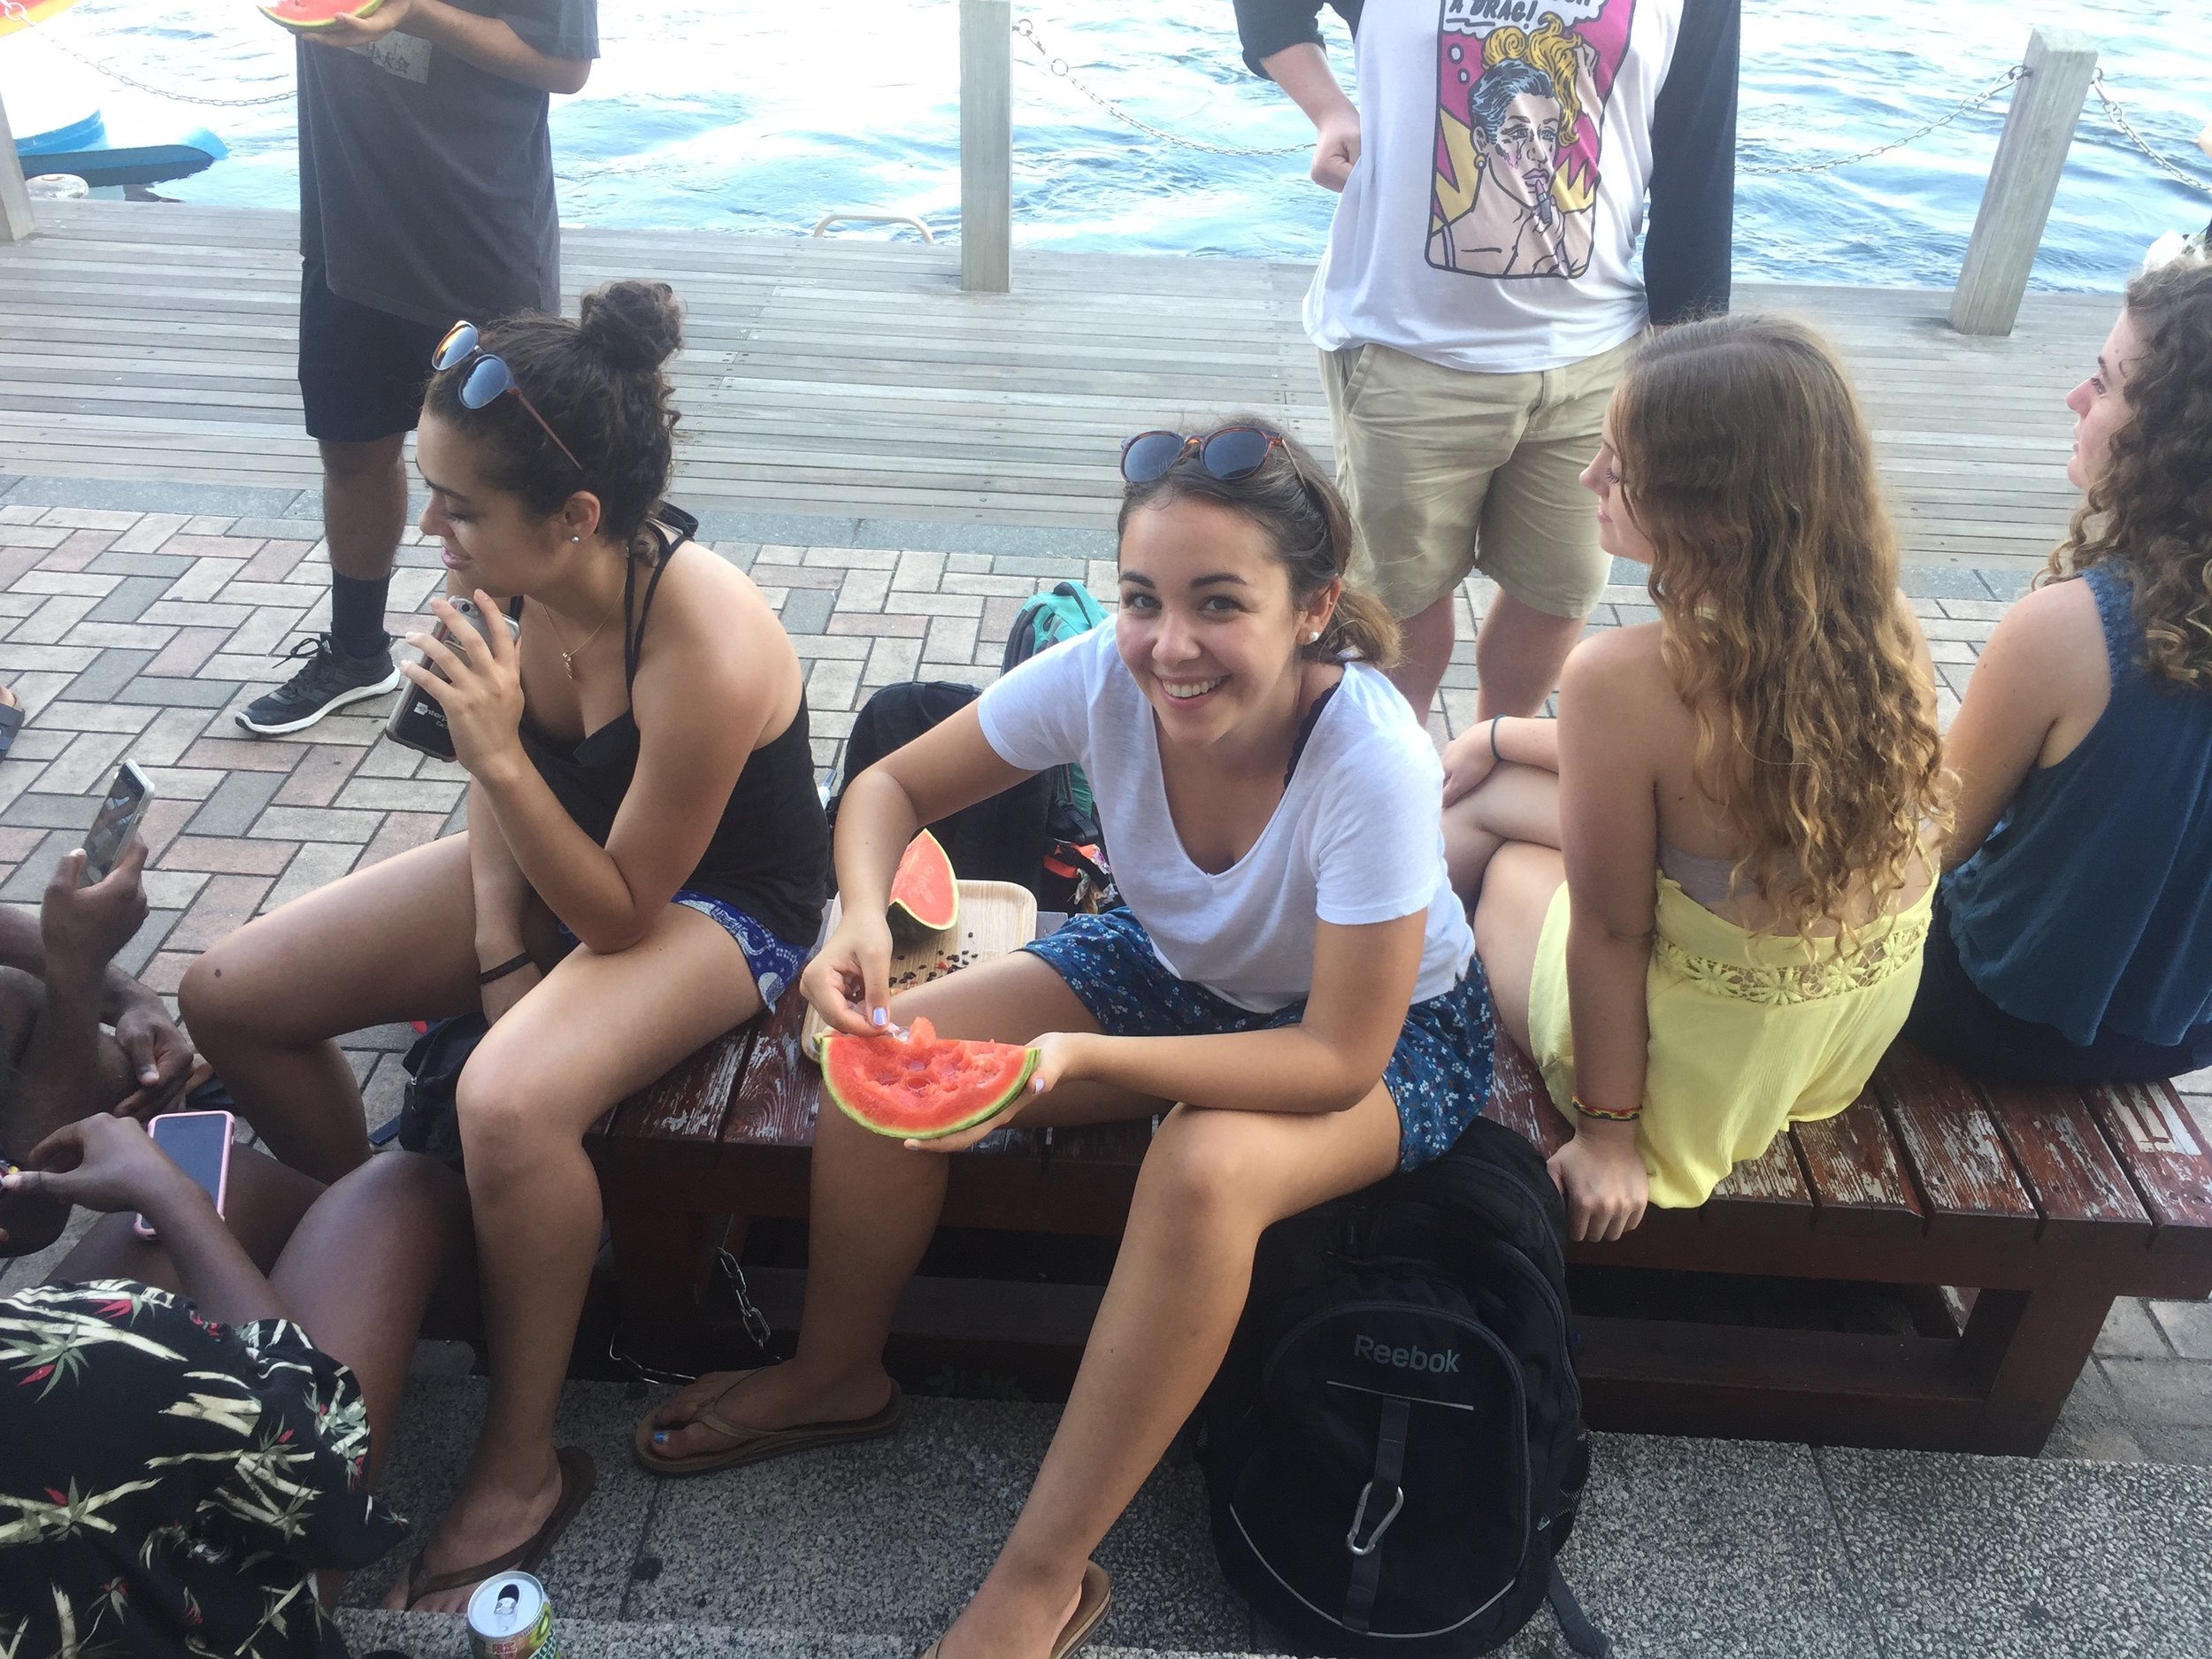 Watermelon on the pier.